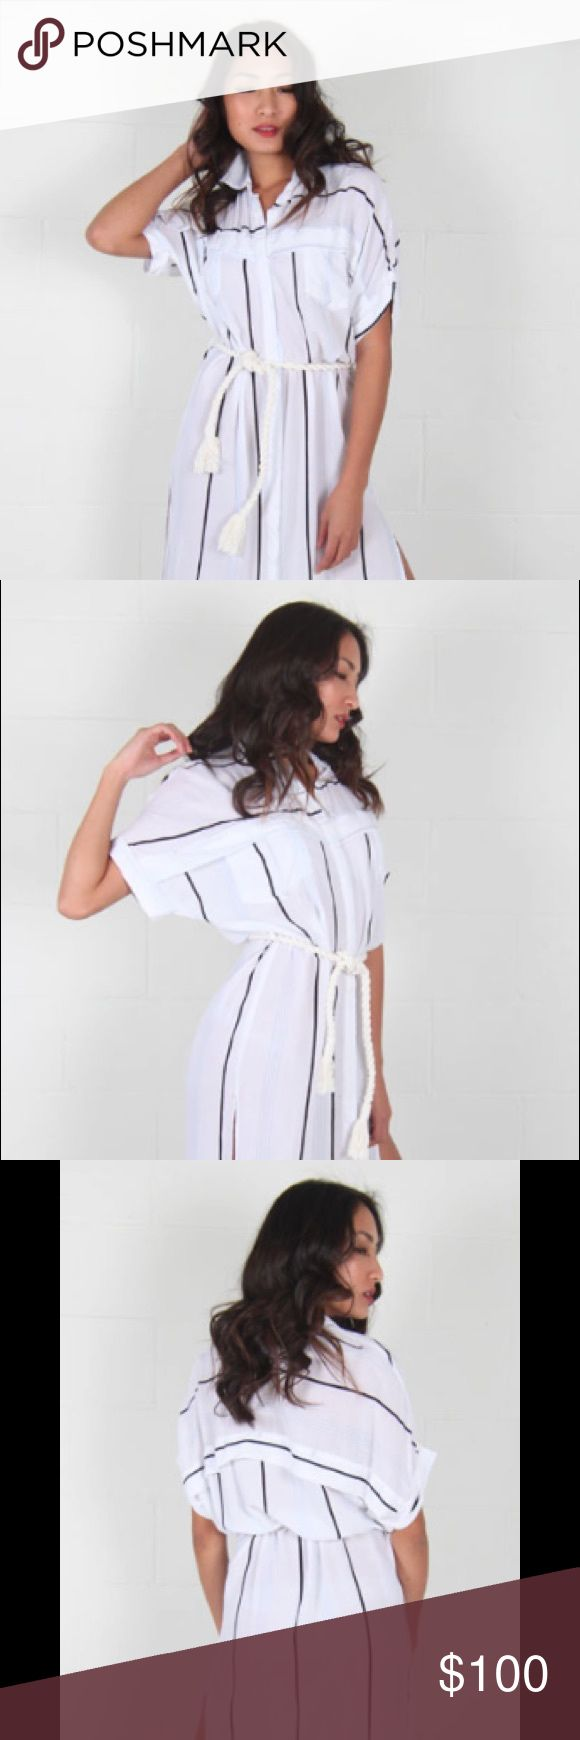 Faithfull the Brand Gigi dress XS Worn once, near perfect condition Faithfull the Brand Gigi dress. Hi low style, super comfortable. Loose and flowy. Great beach coverup. Comes with rope belt. Faithfull the Brand Dresses High Low